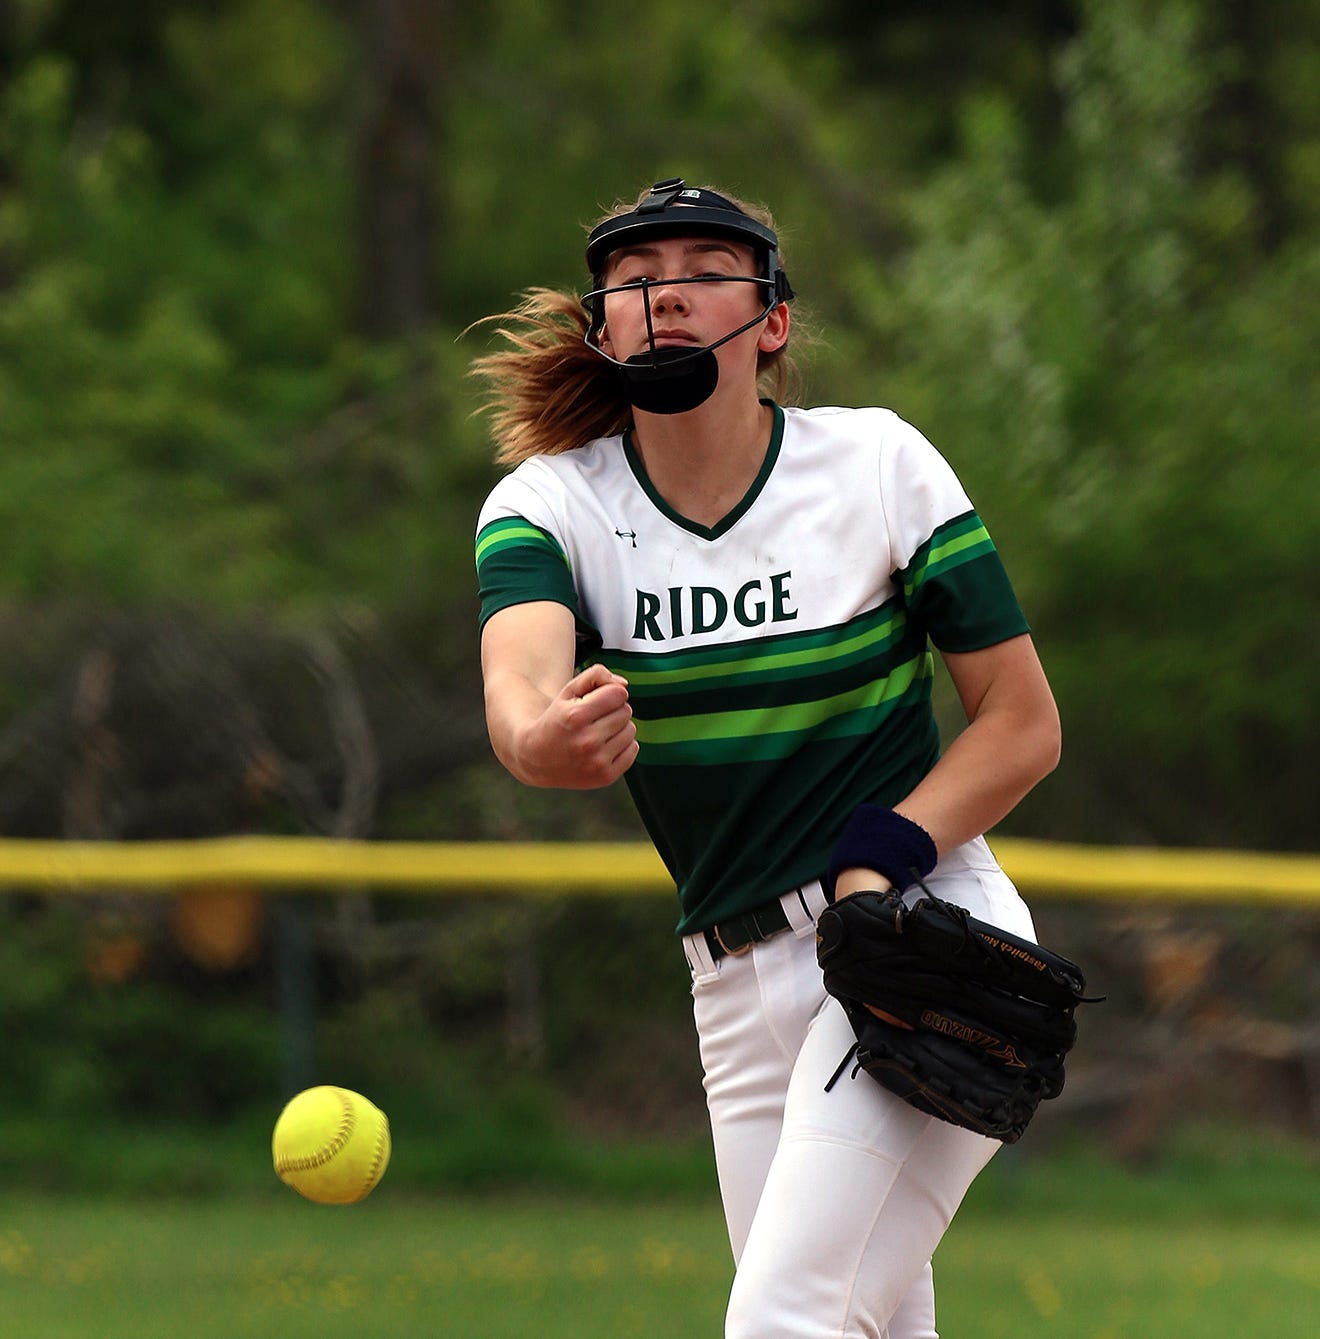 NJ SOFTBALL roundup and analysis: Ridge topples Montgomery in SCT semi, Hillsborough advances past Bridgewater